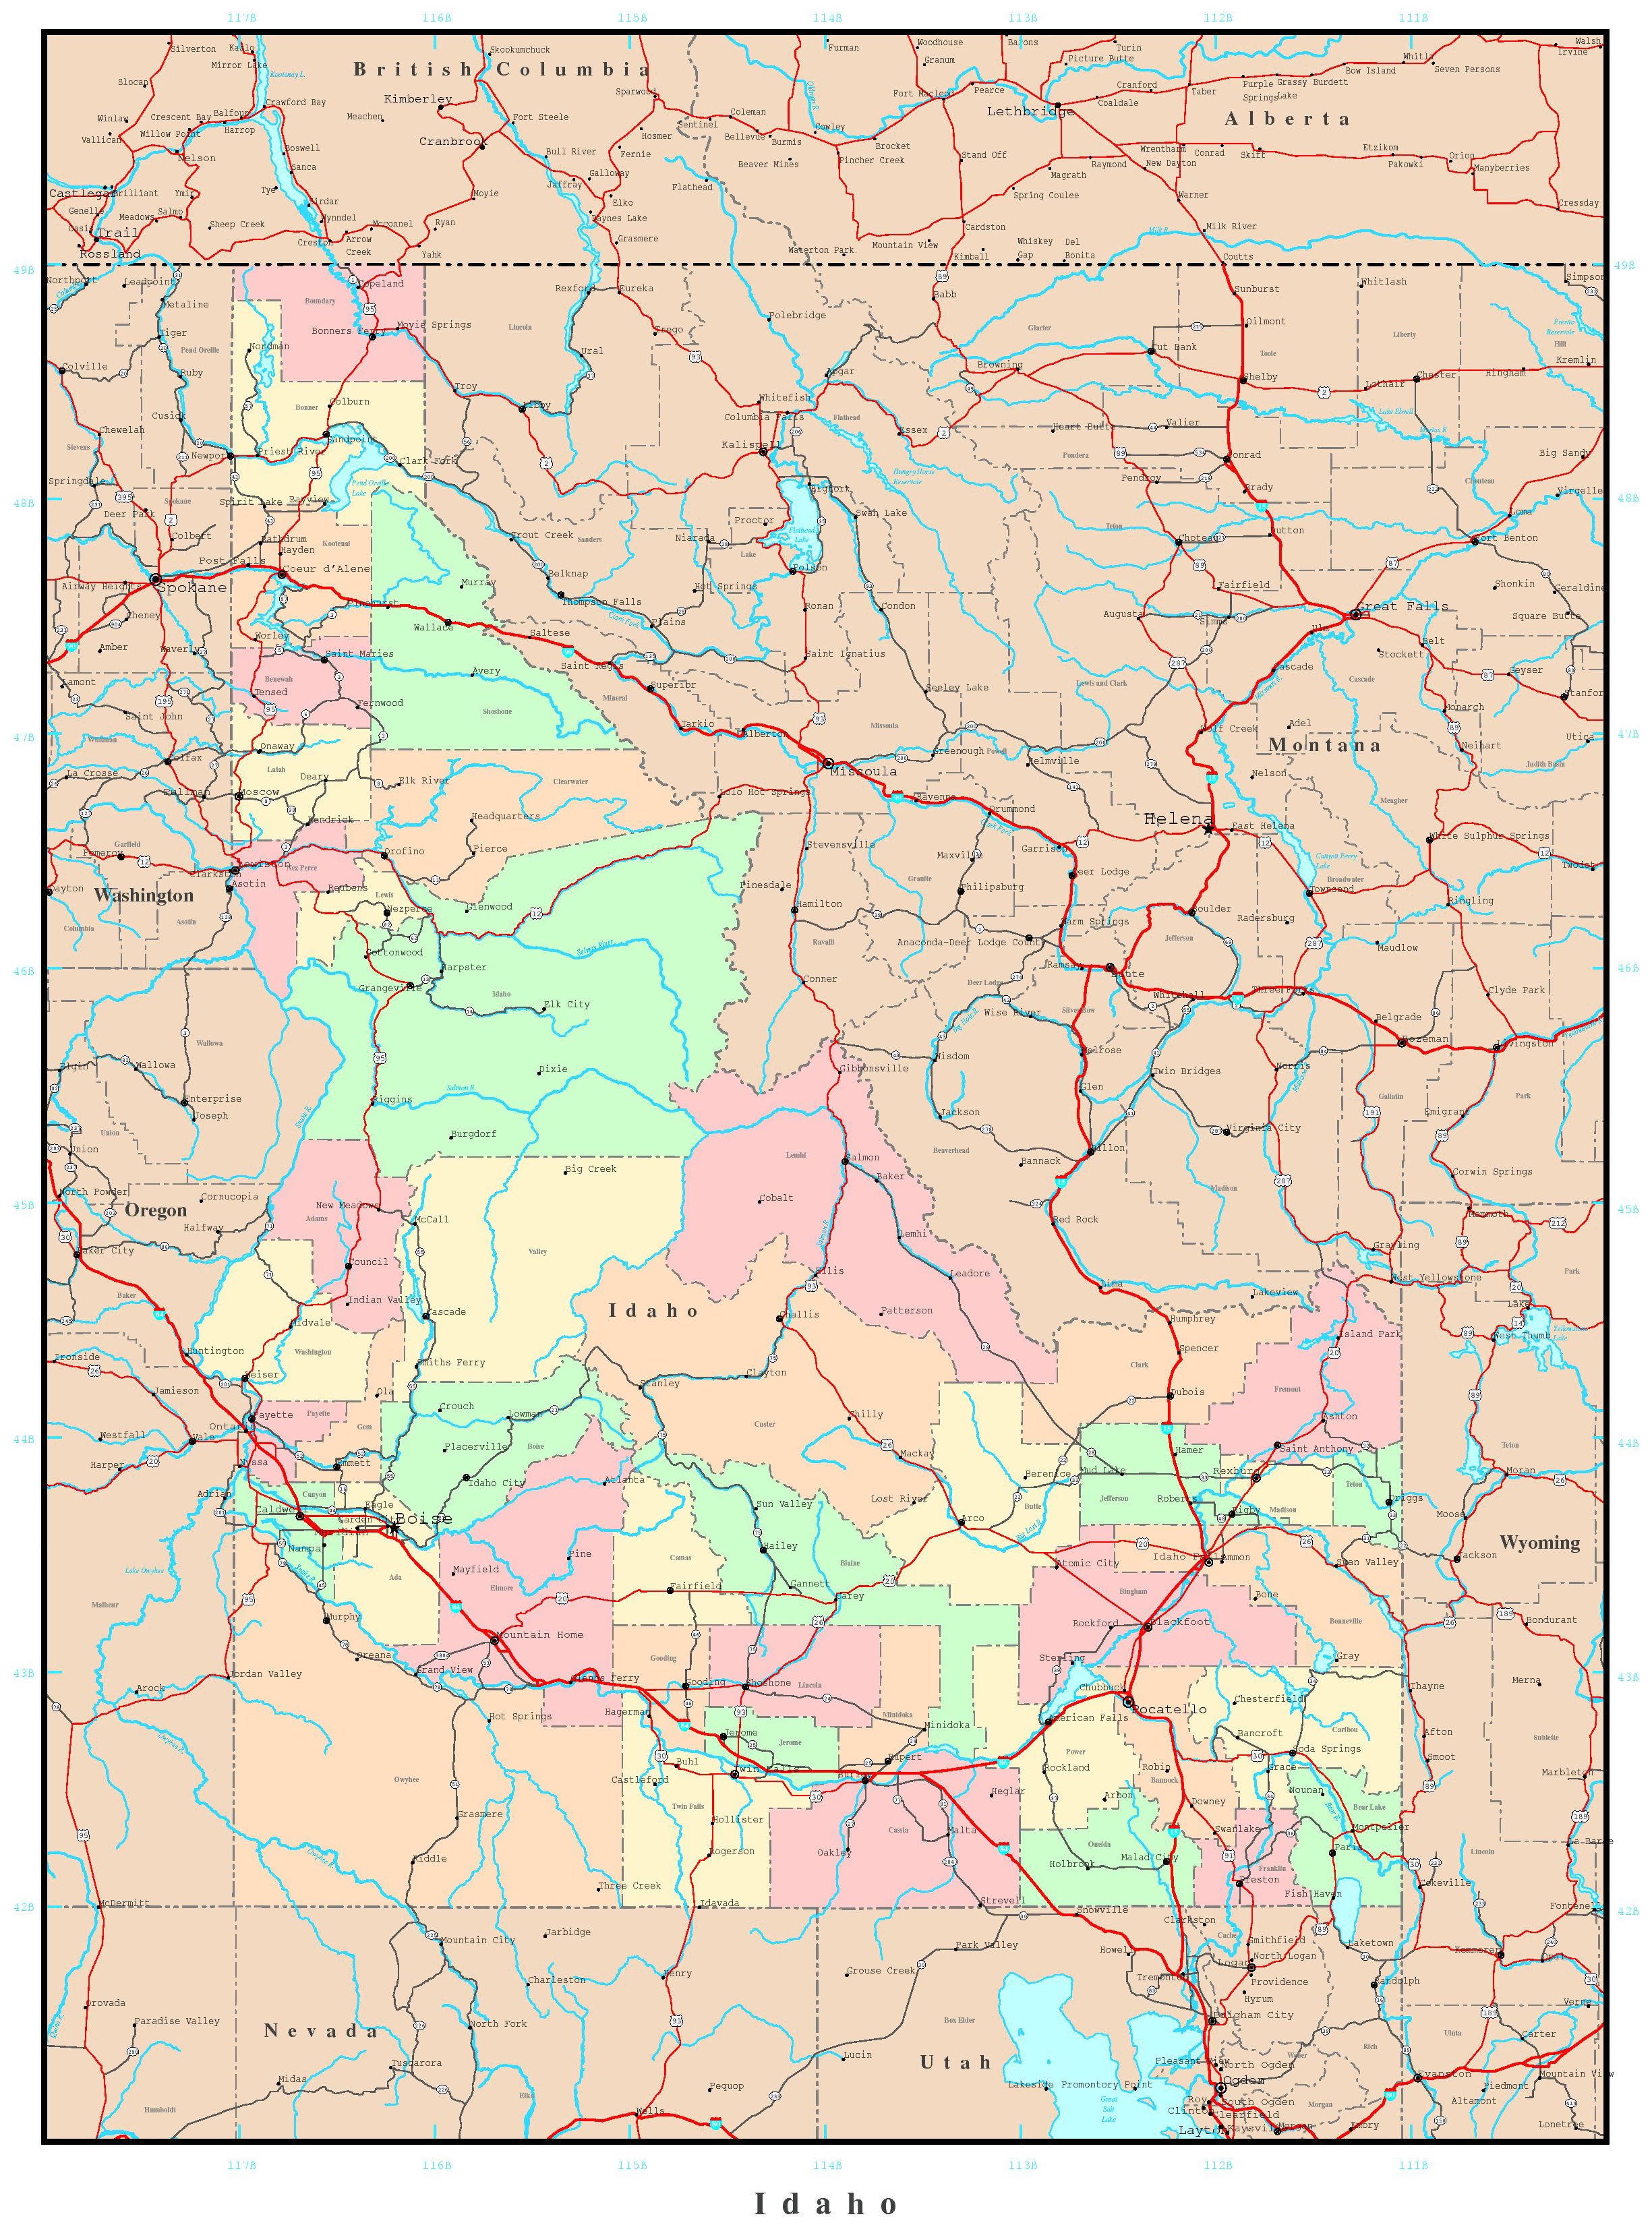 Large Administrative Map Of Idaho With Roads Highways And Major - Map of idaho with cities